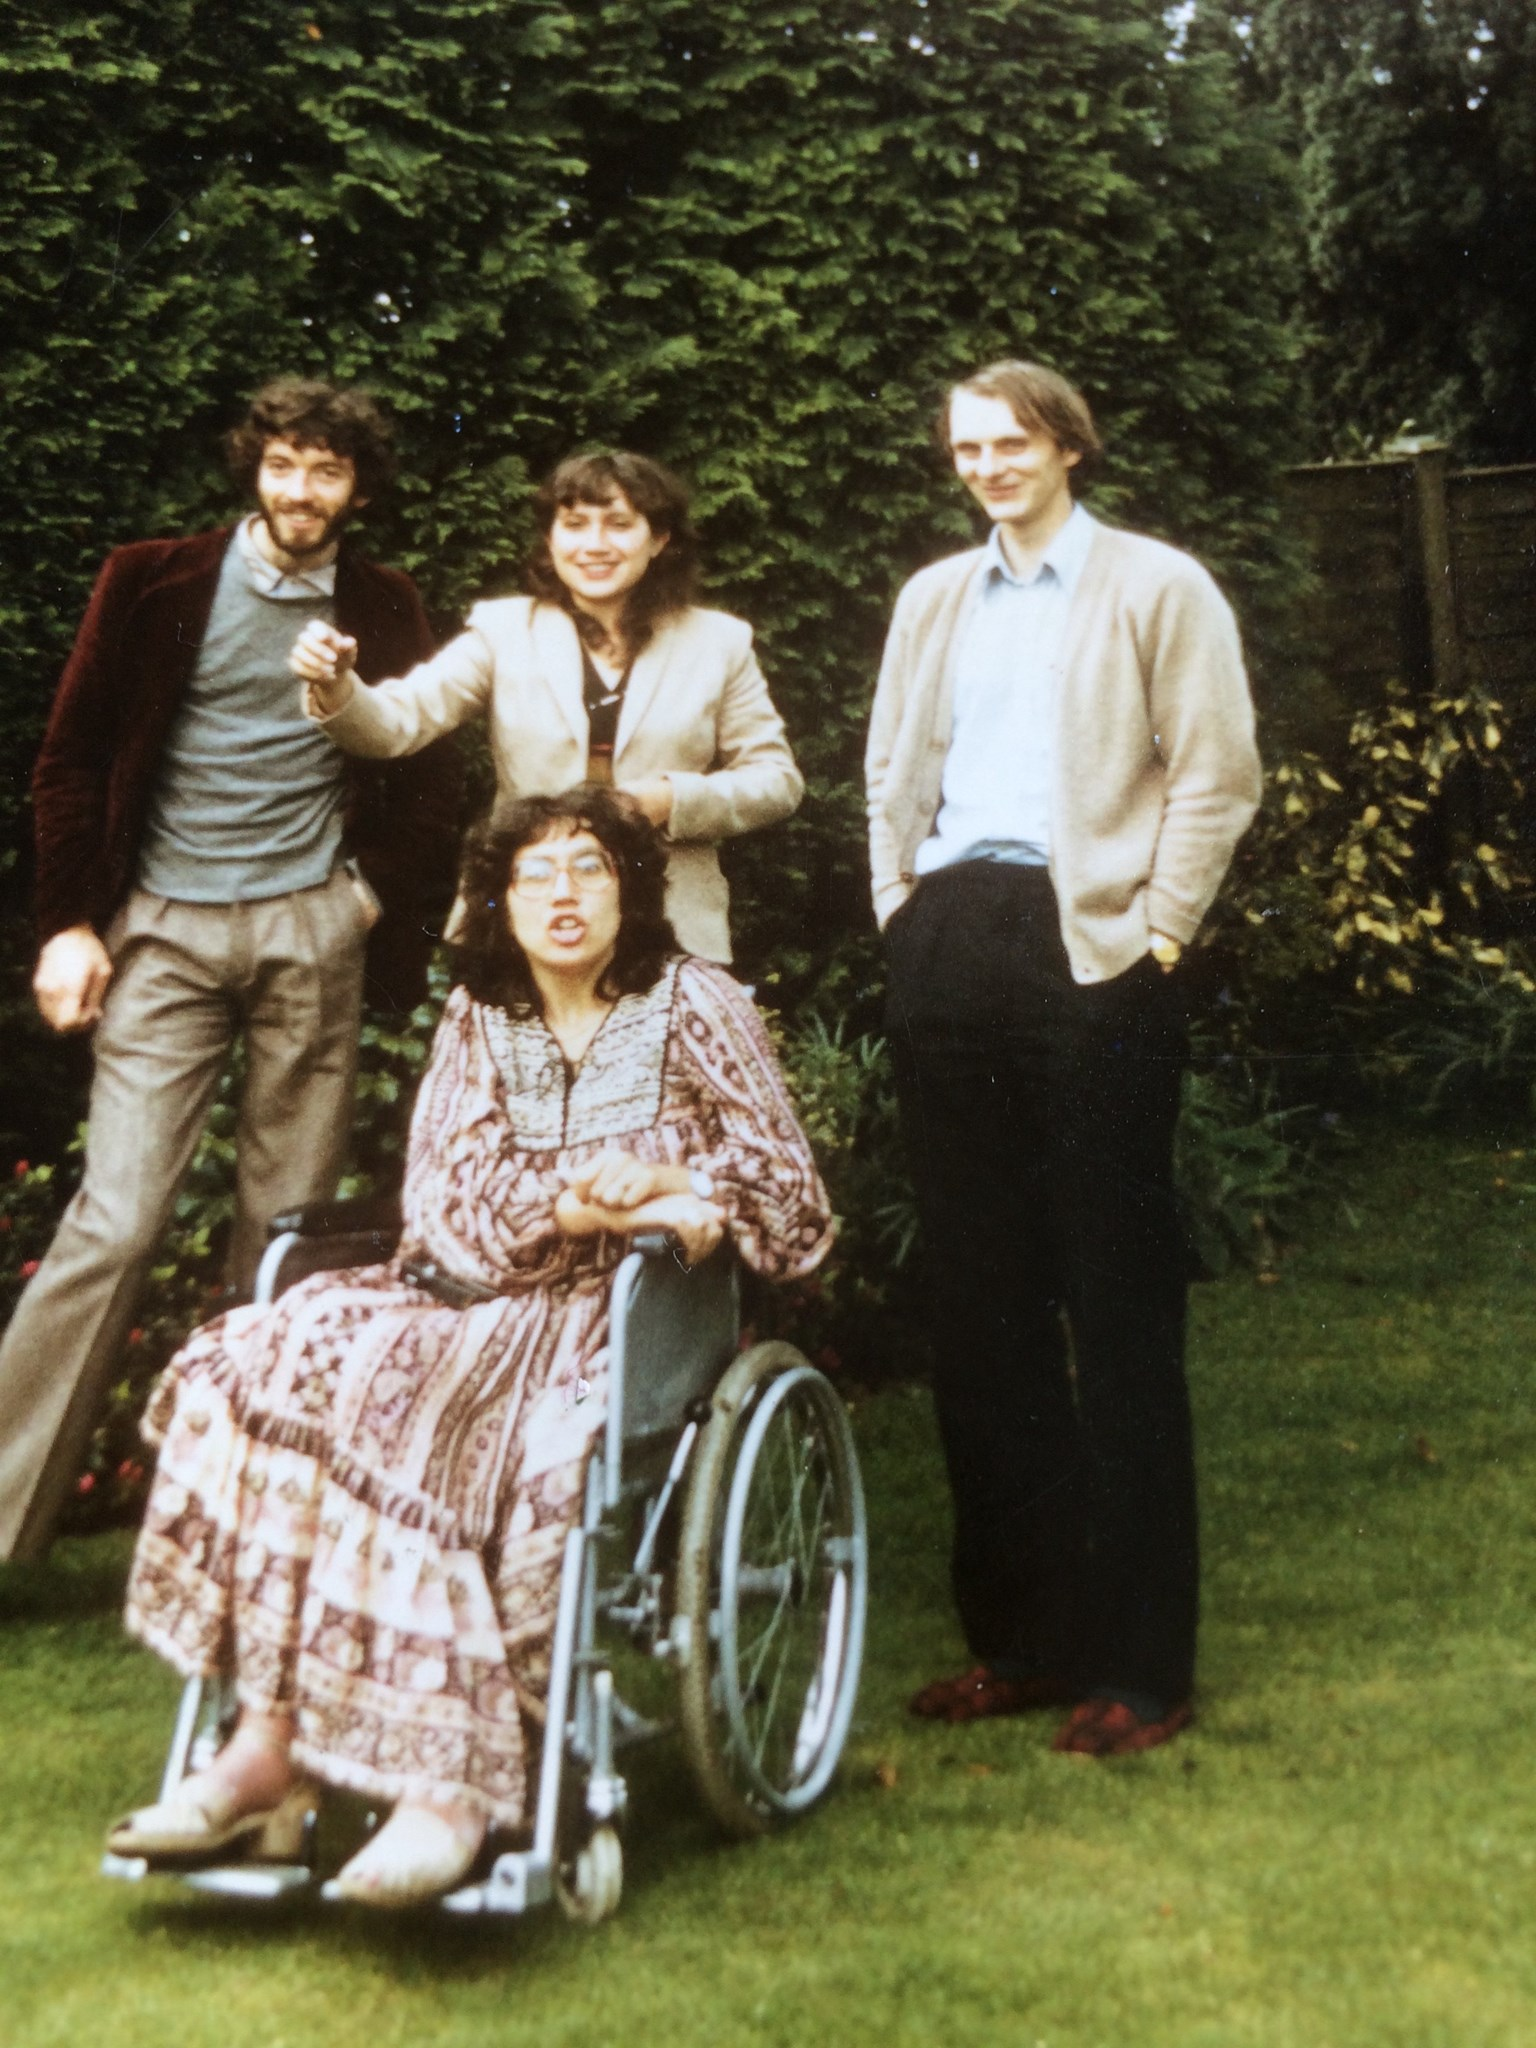 Rick, Claire, Helen and her husband around 1970